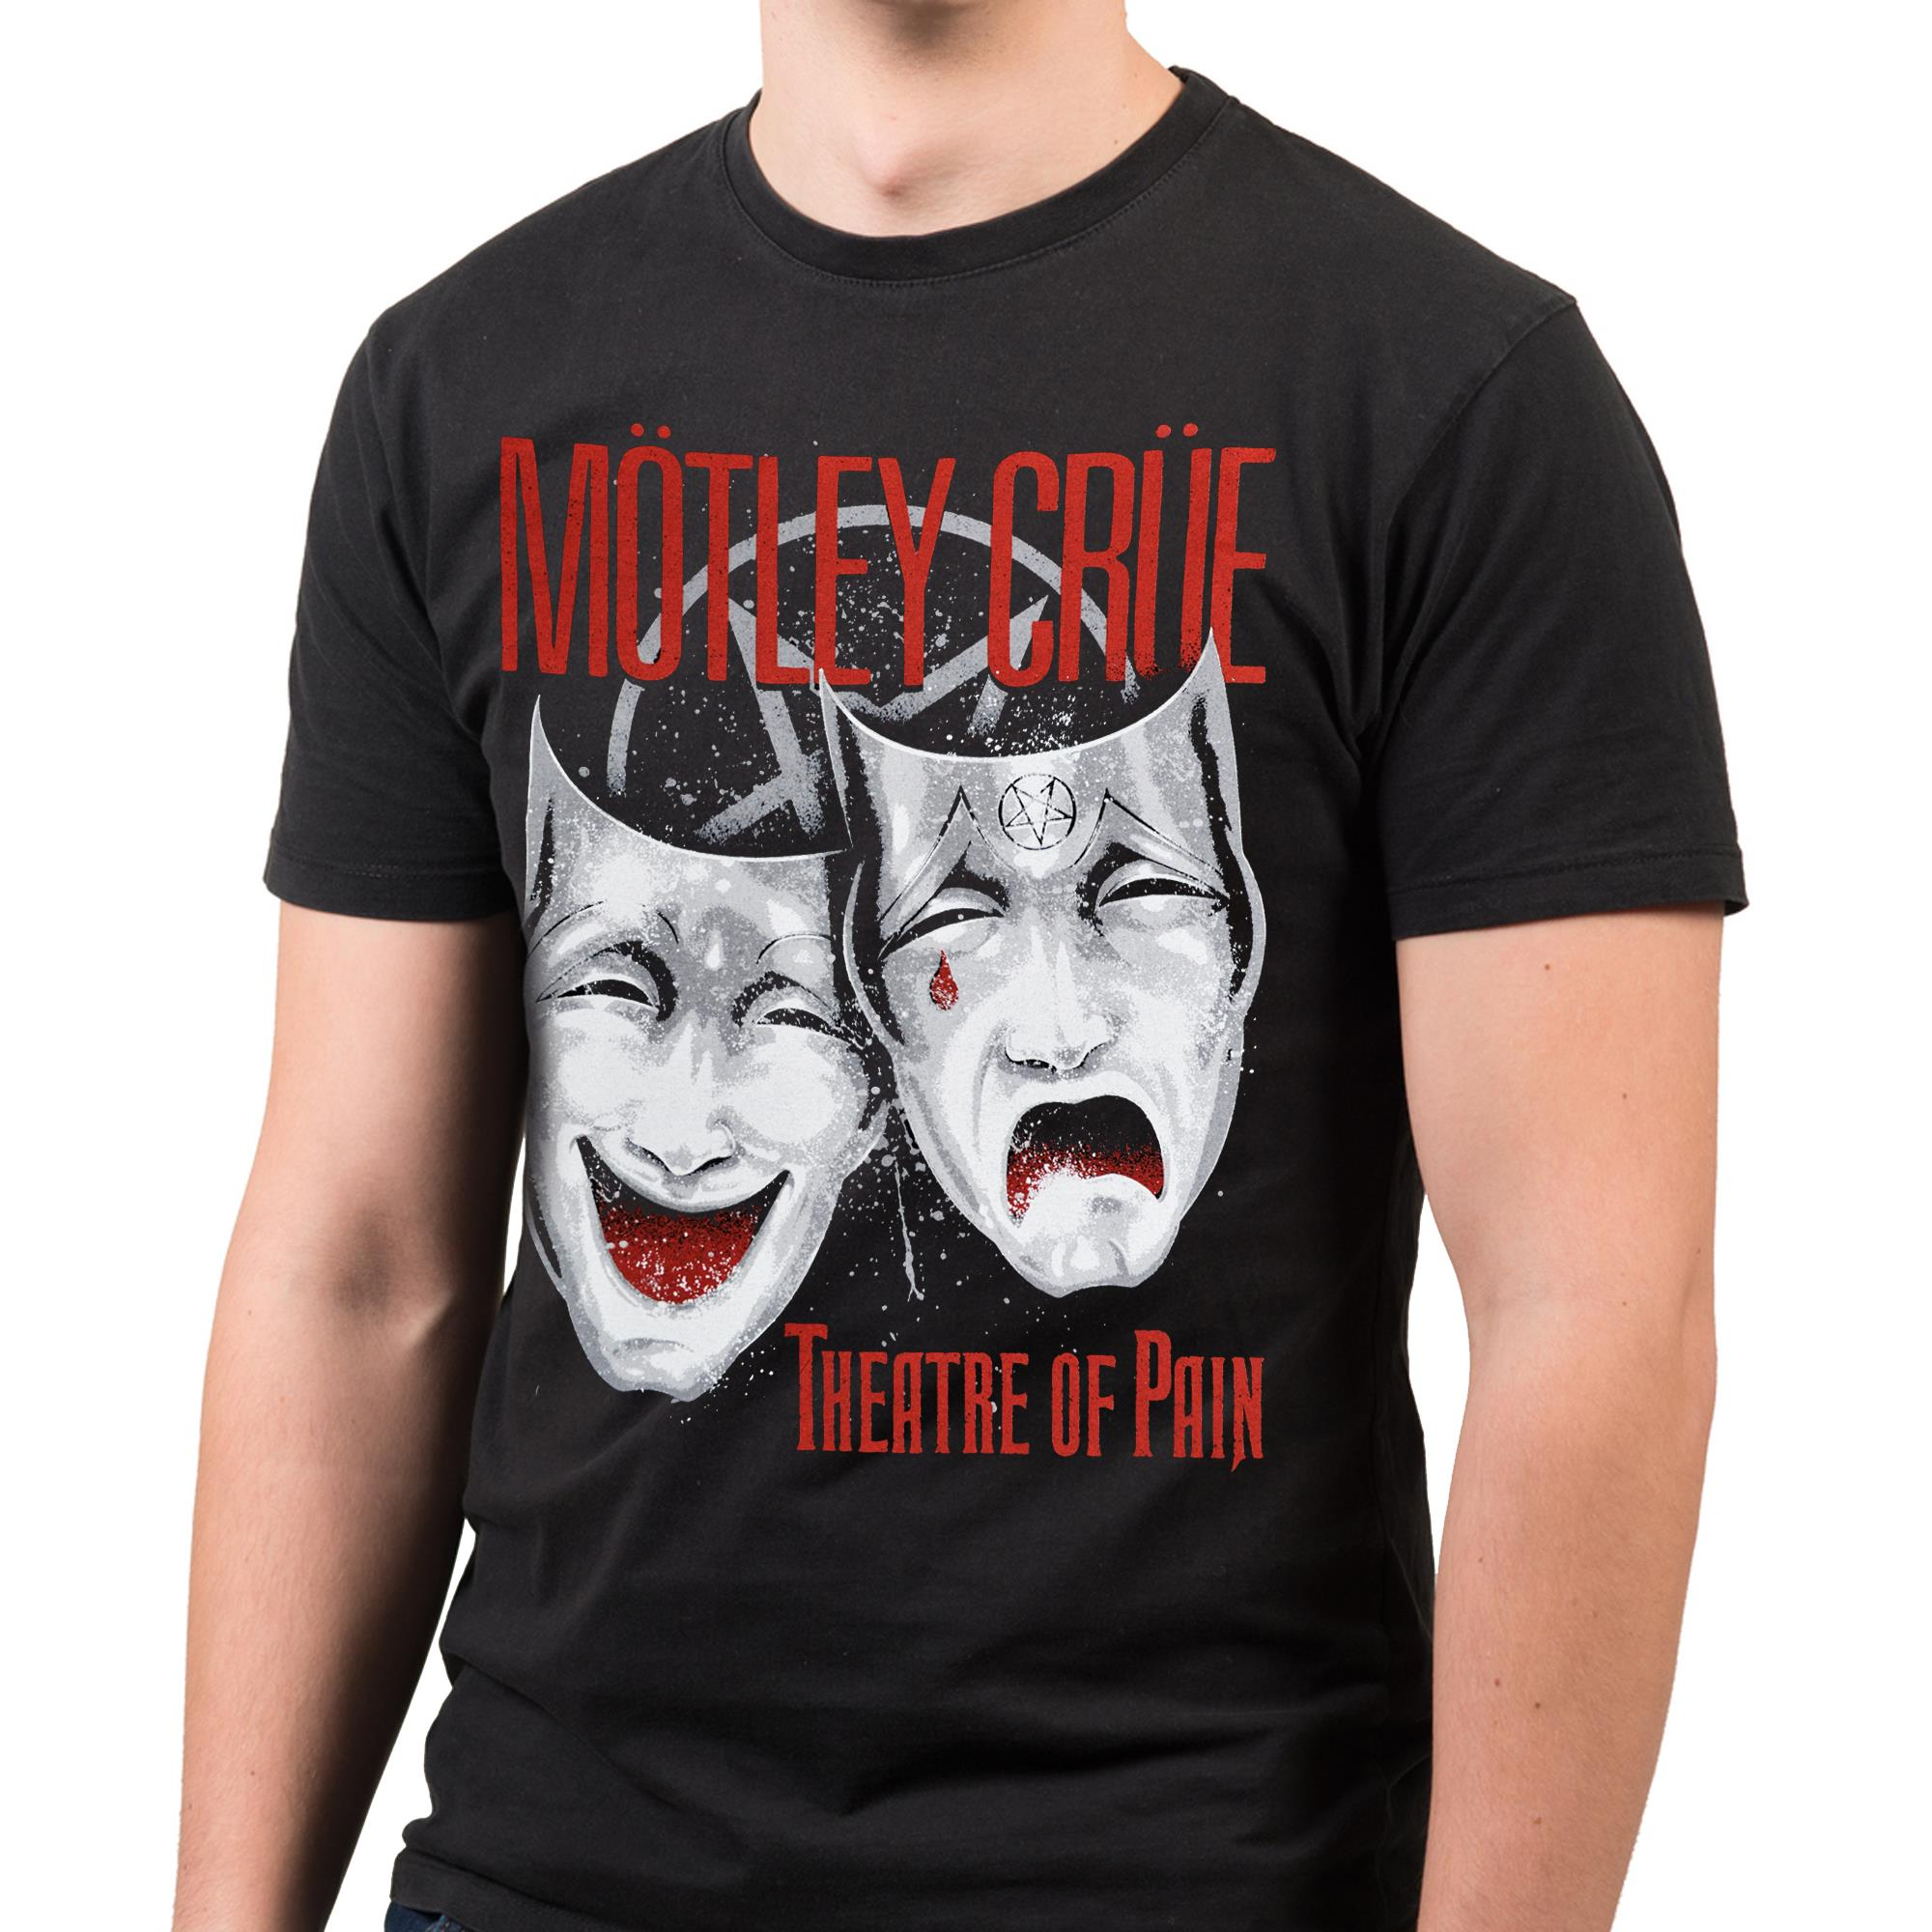 Theatre Of Pain T-Shirt